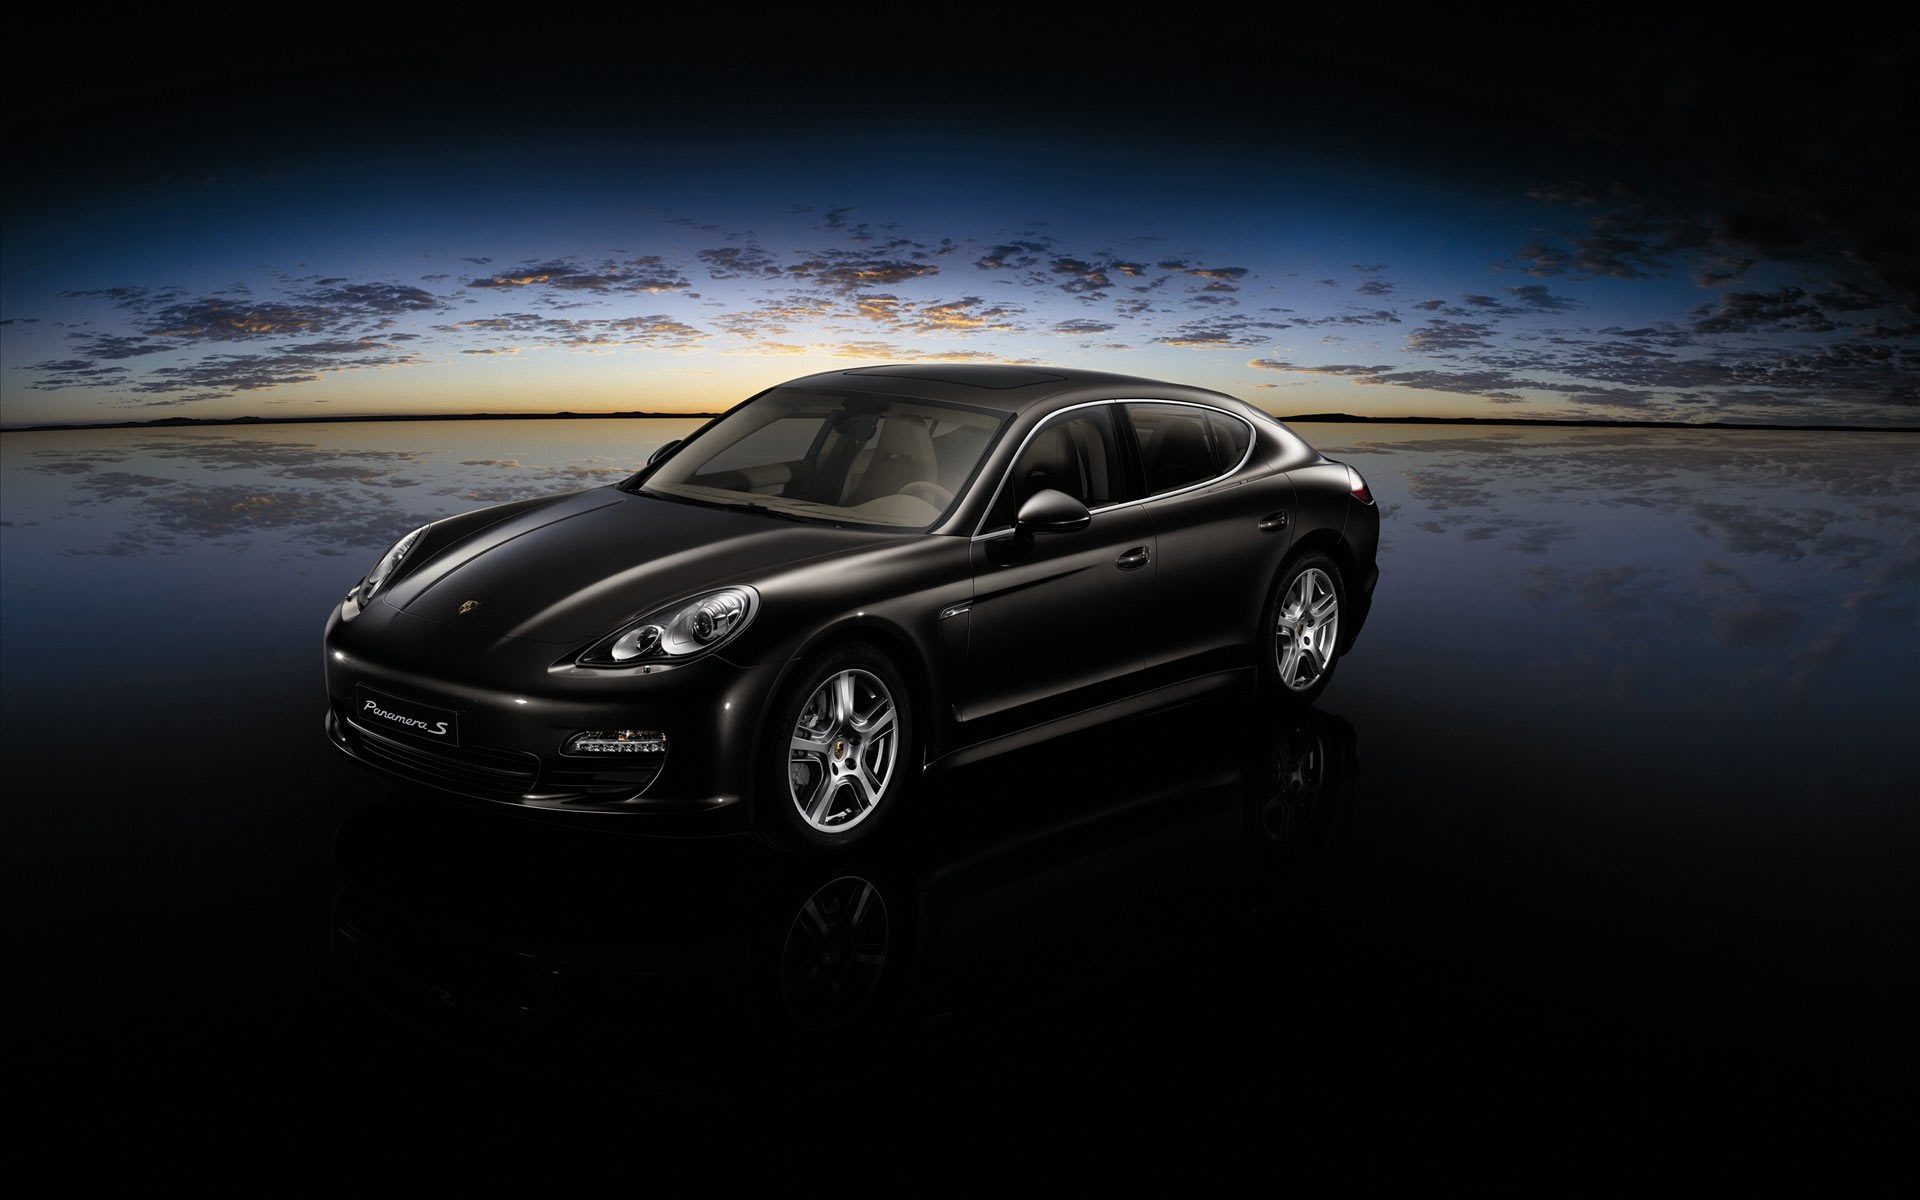 Porsche Panamera S Full HD Wallpaper And Background Image